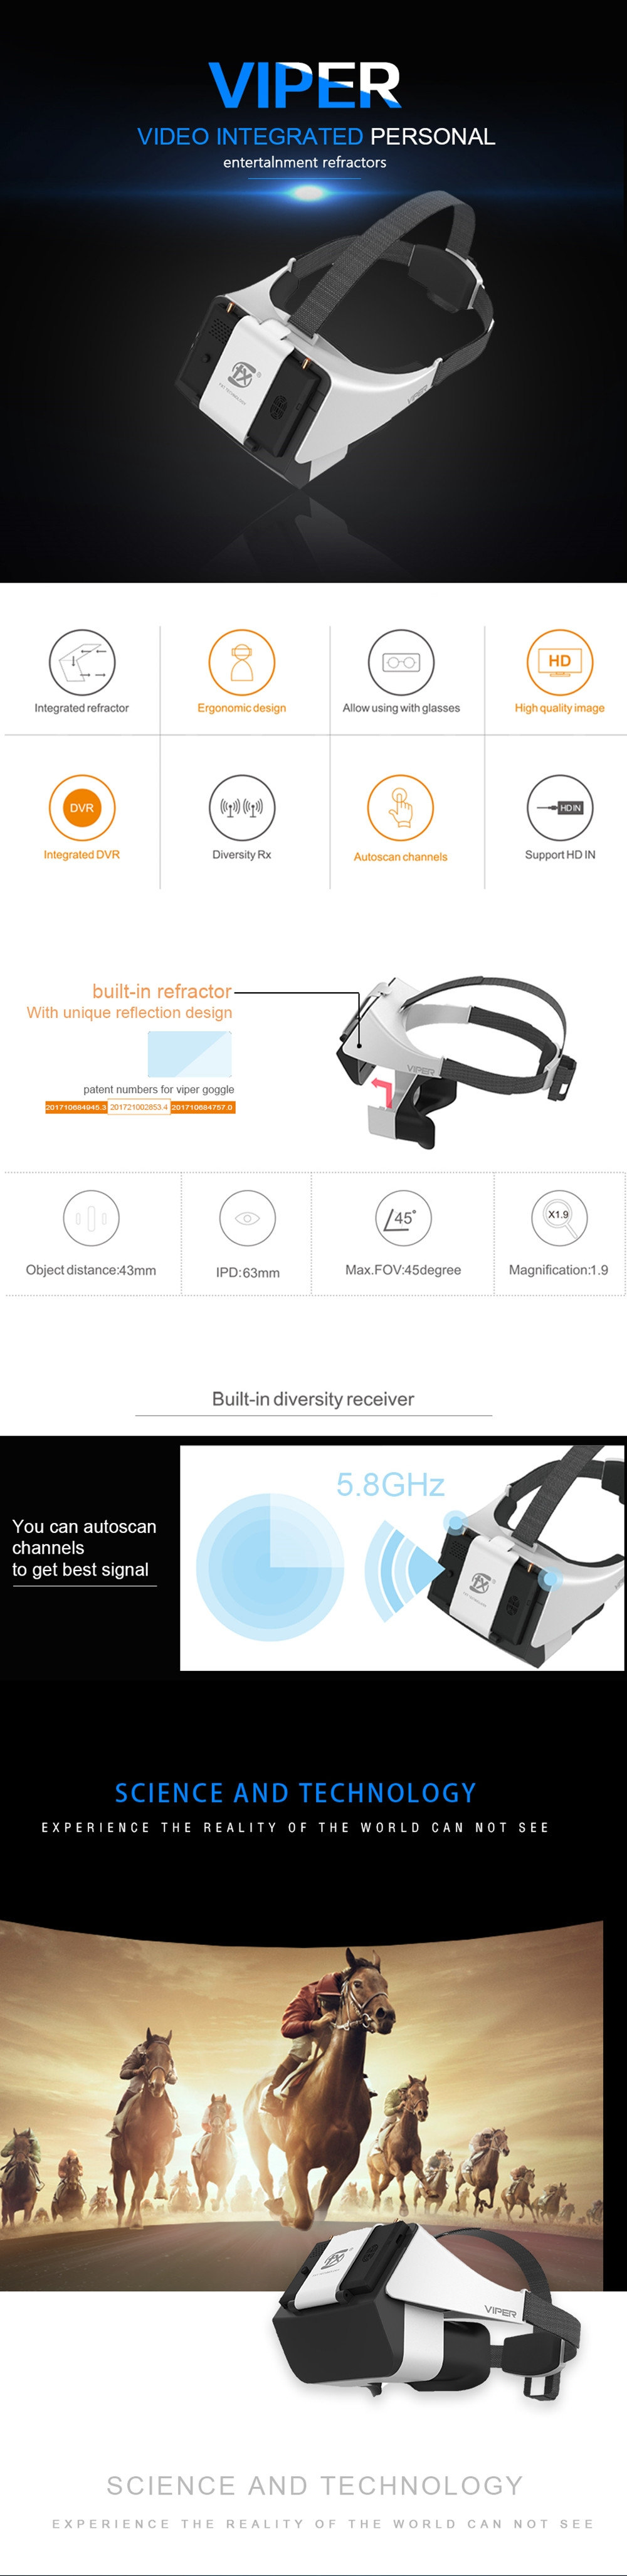 FXT VIPER 5.8GHz Diversity HD FPV Goggles with DVR Built-in Refractor for RC Drone